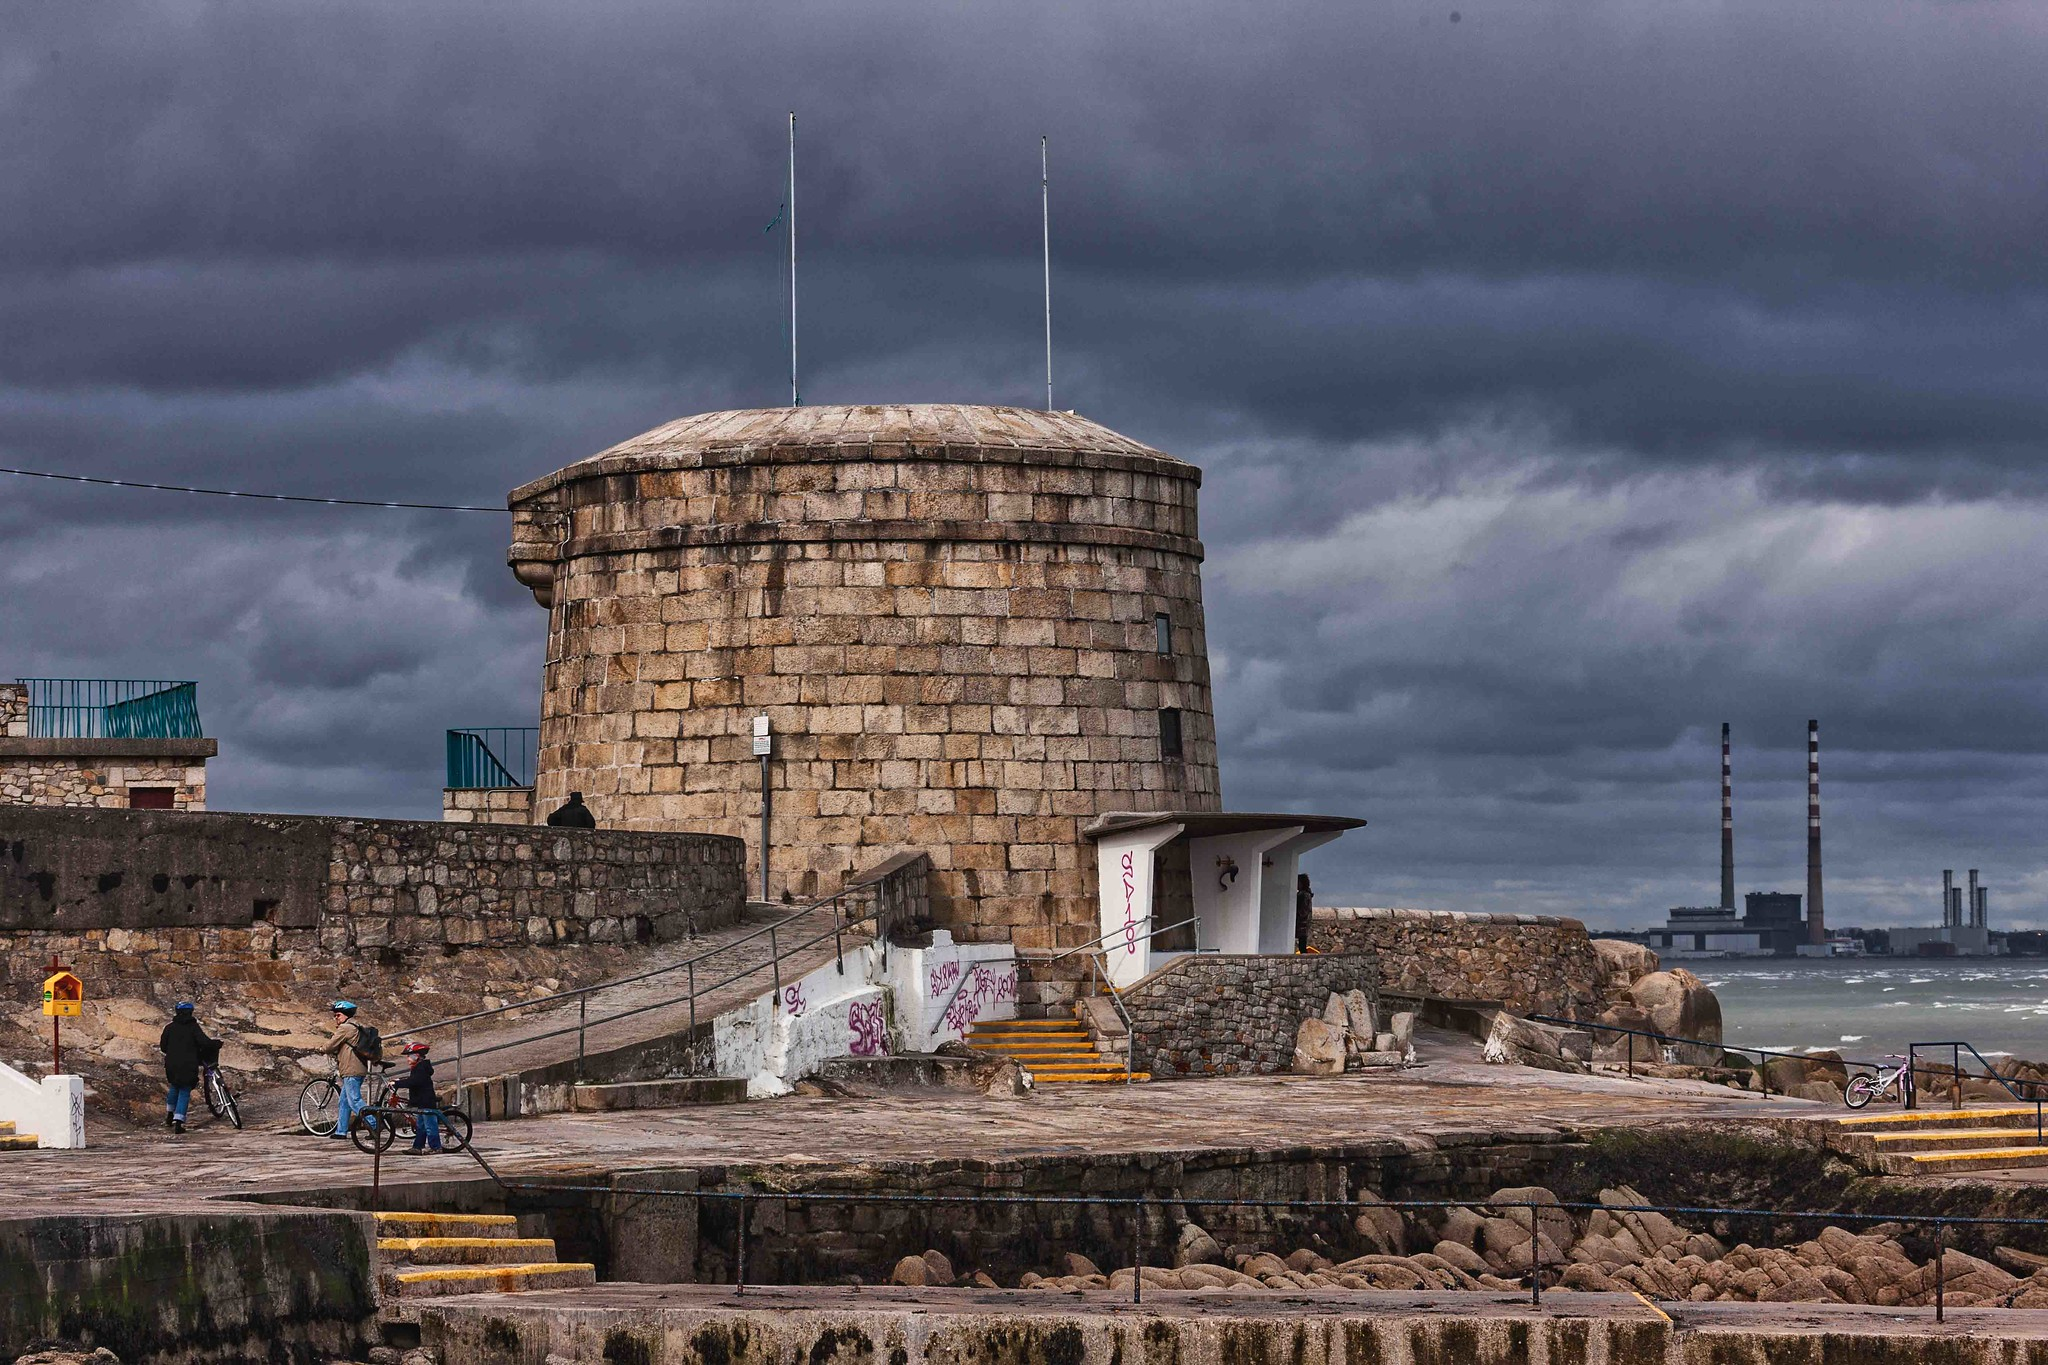 Seapoint and the Martello Tower by William Murphy